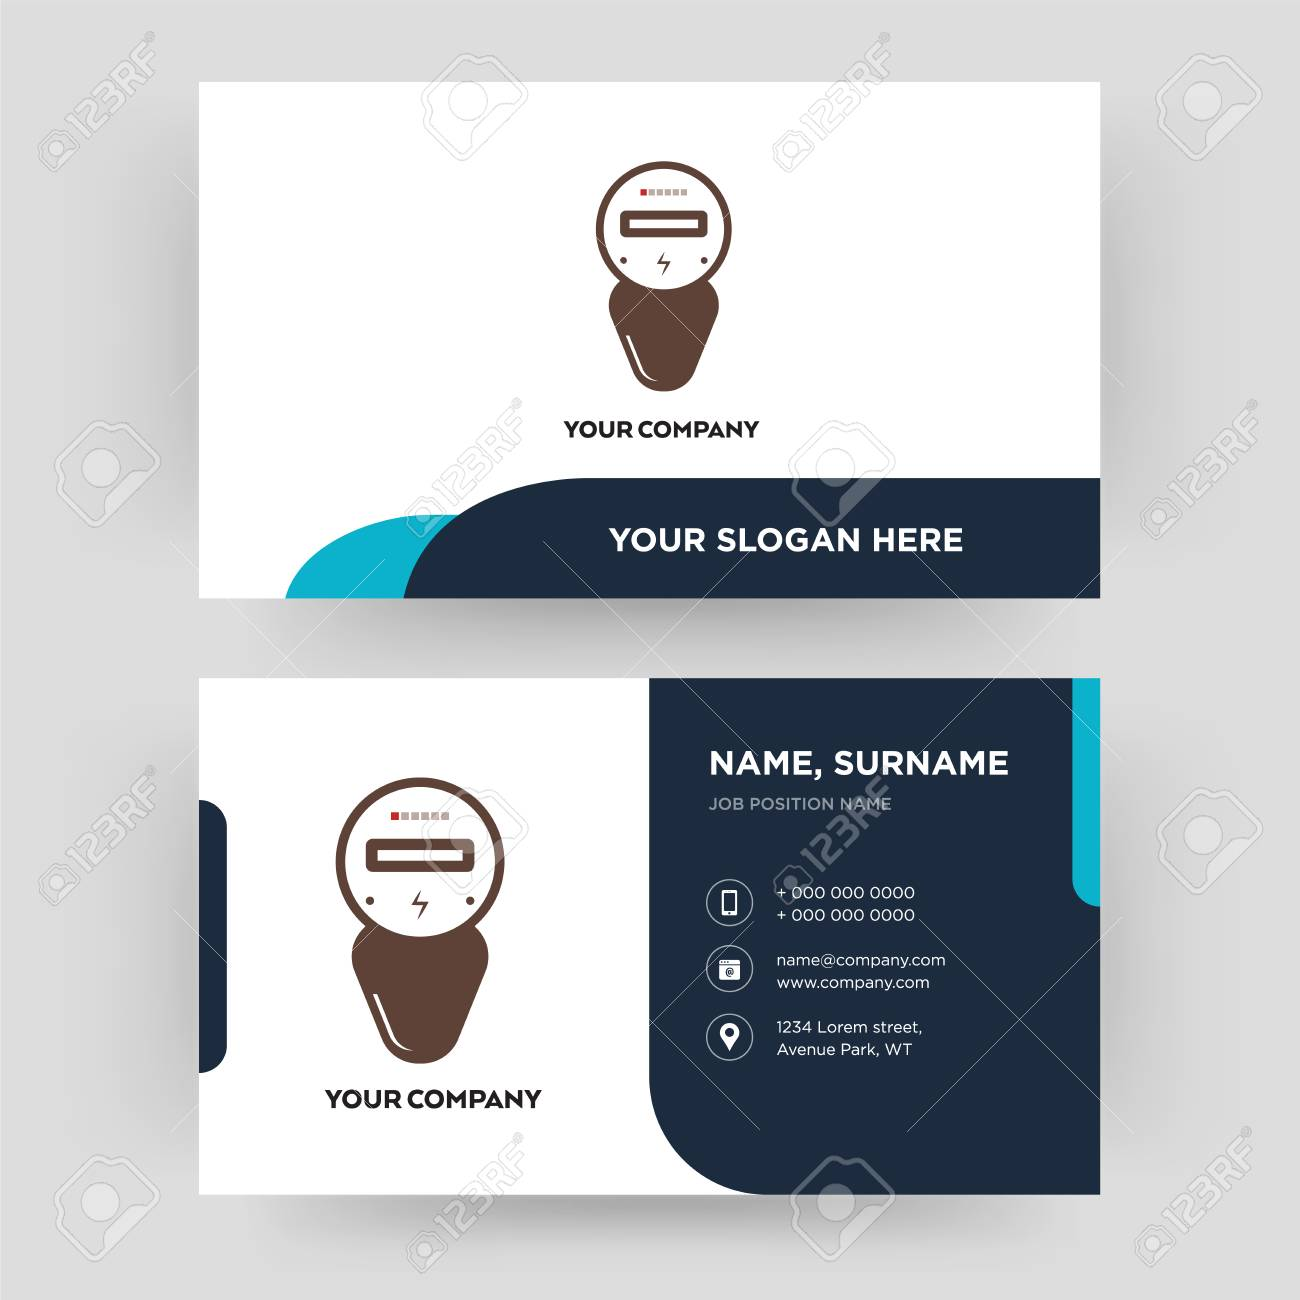 Electric meter business card design template visiting for your electric meter business card design template visiting for your company modern creative and fbccfo Image collections